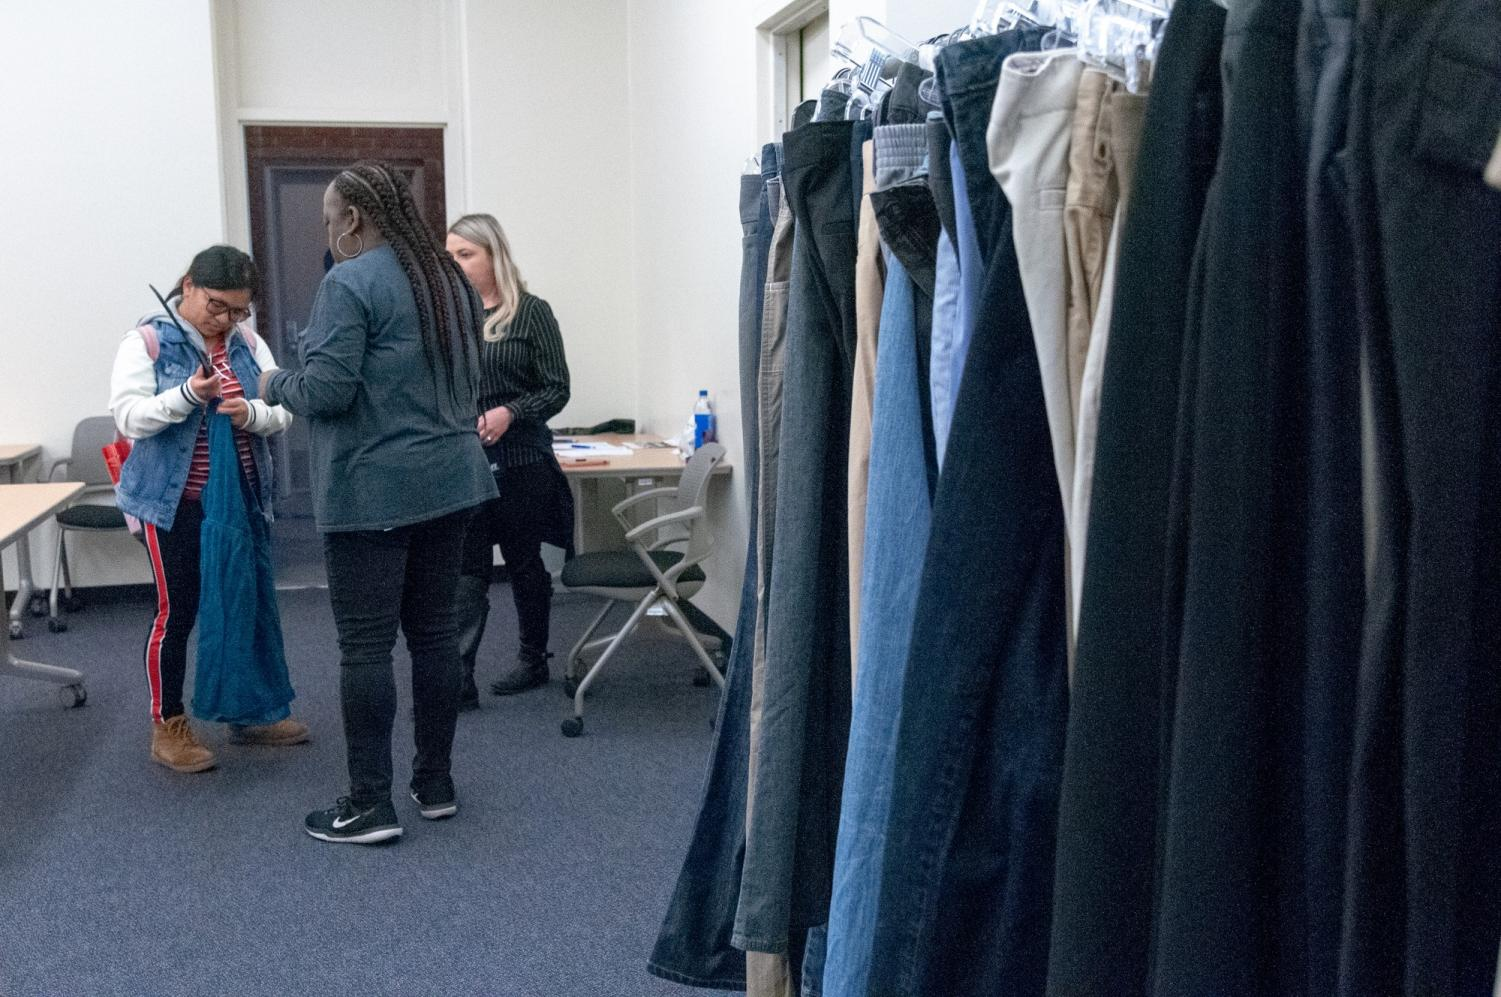 A student takes a dress off a hanger after she decides to take it with her on Wednesday, March 27. The goal of the Warrior Closet is to provide clothing to students in need. Photo credit: Elena Perez